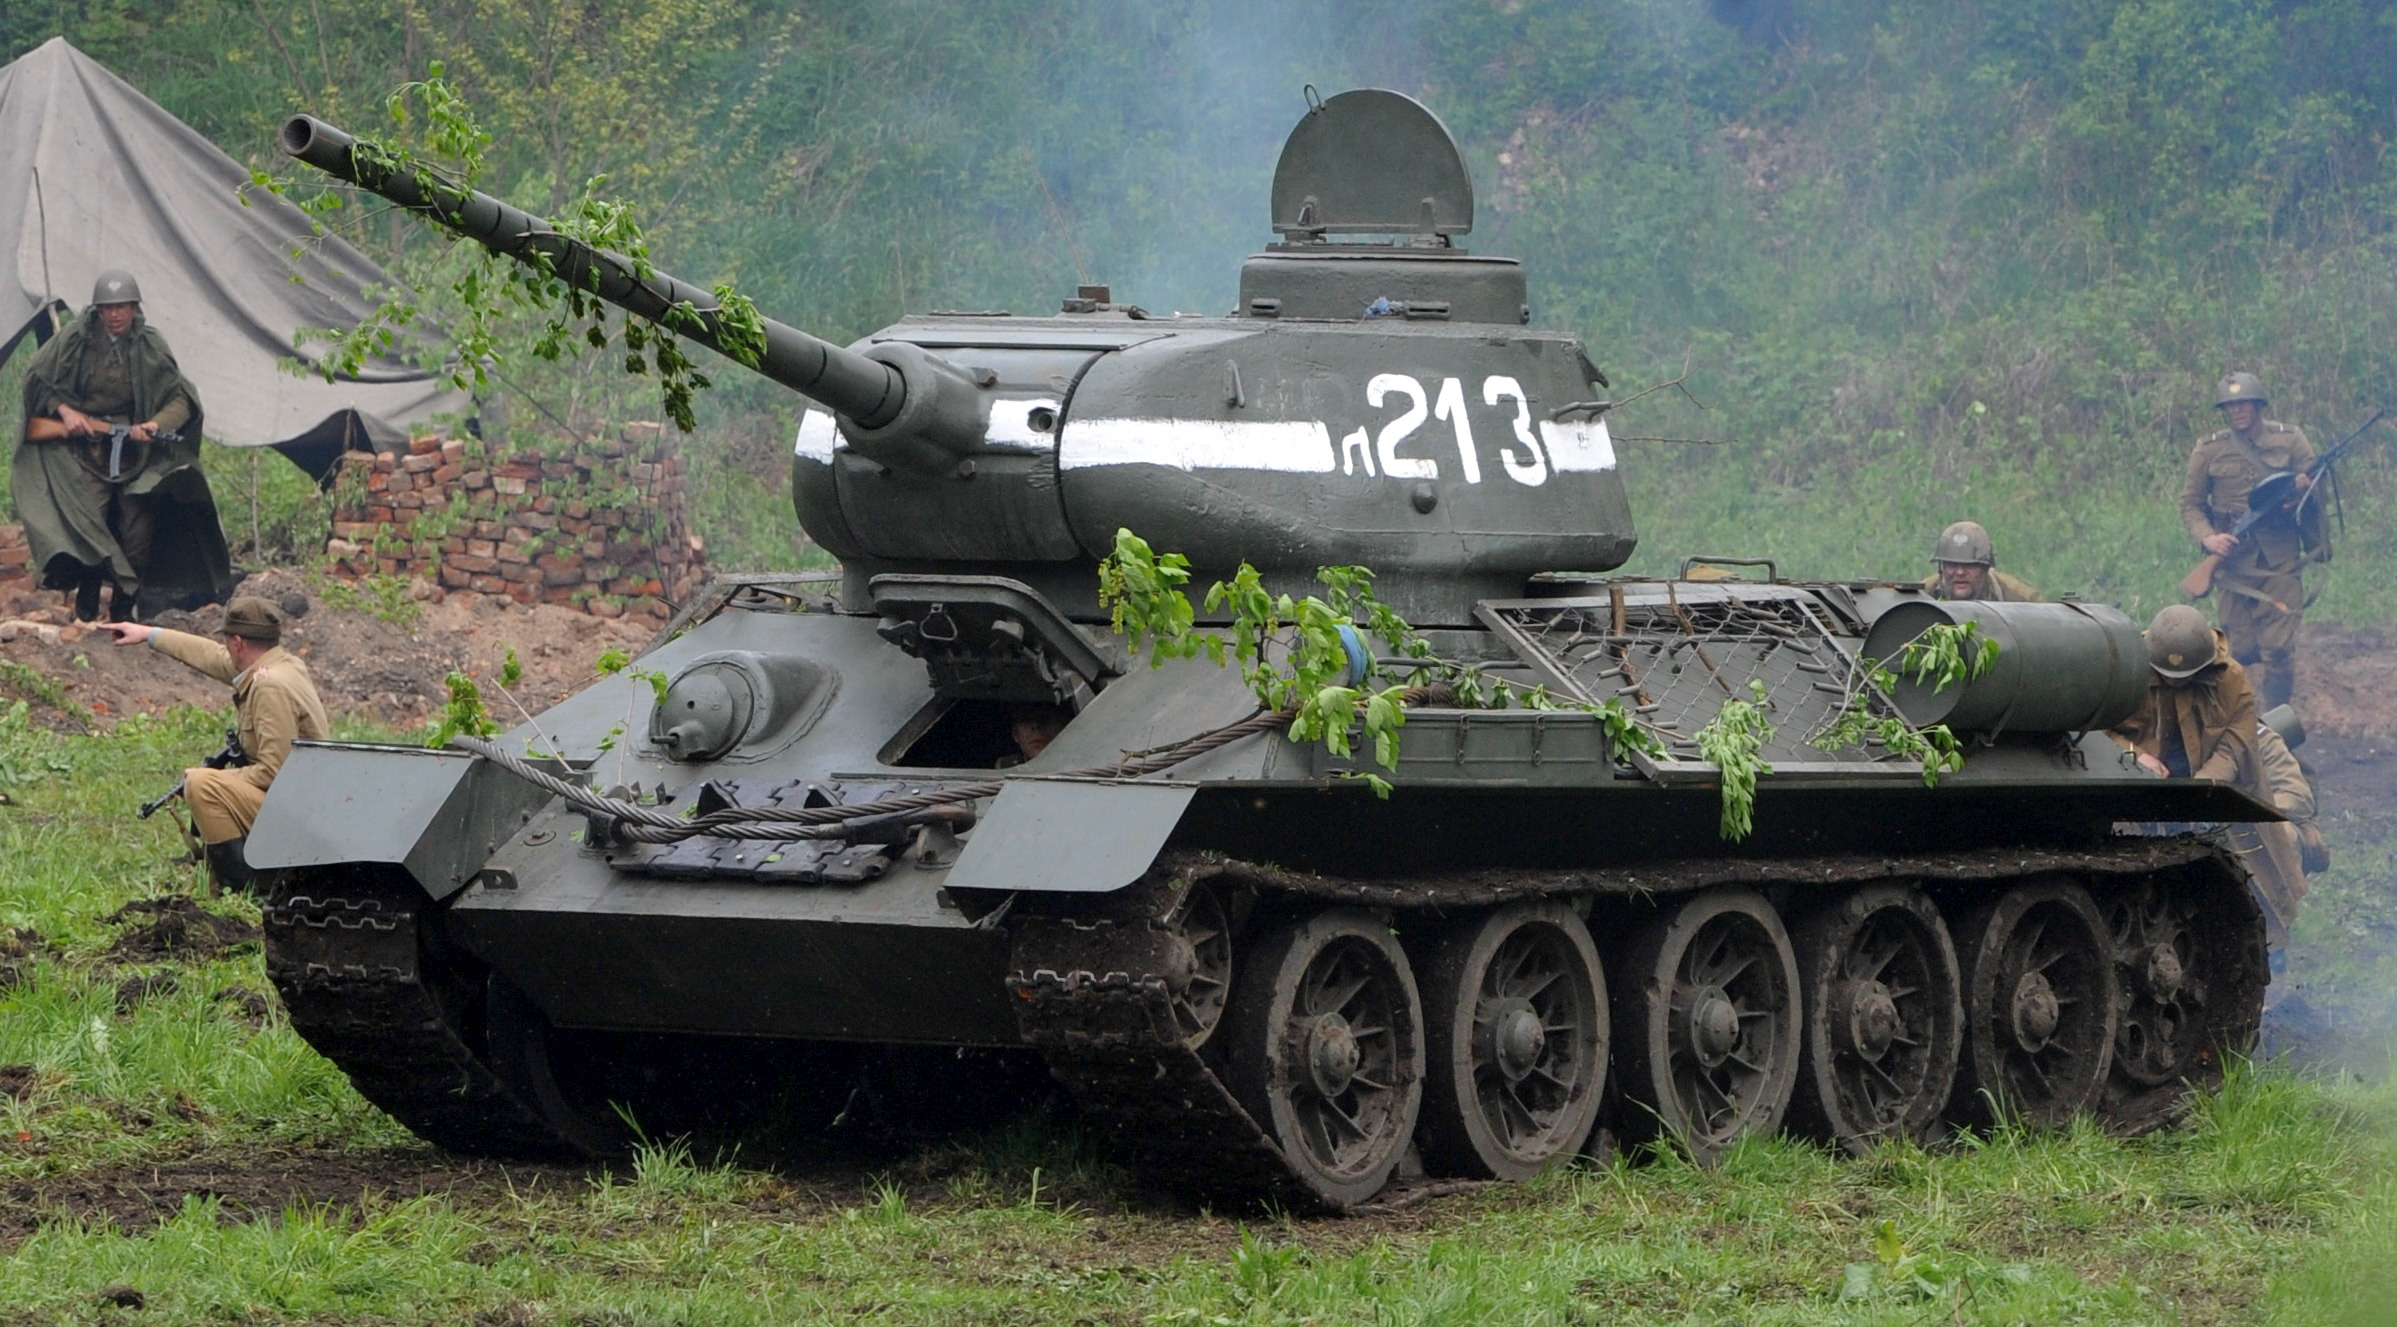 The Soviet T-34: The Lethal Tank that Won World War II ...